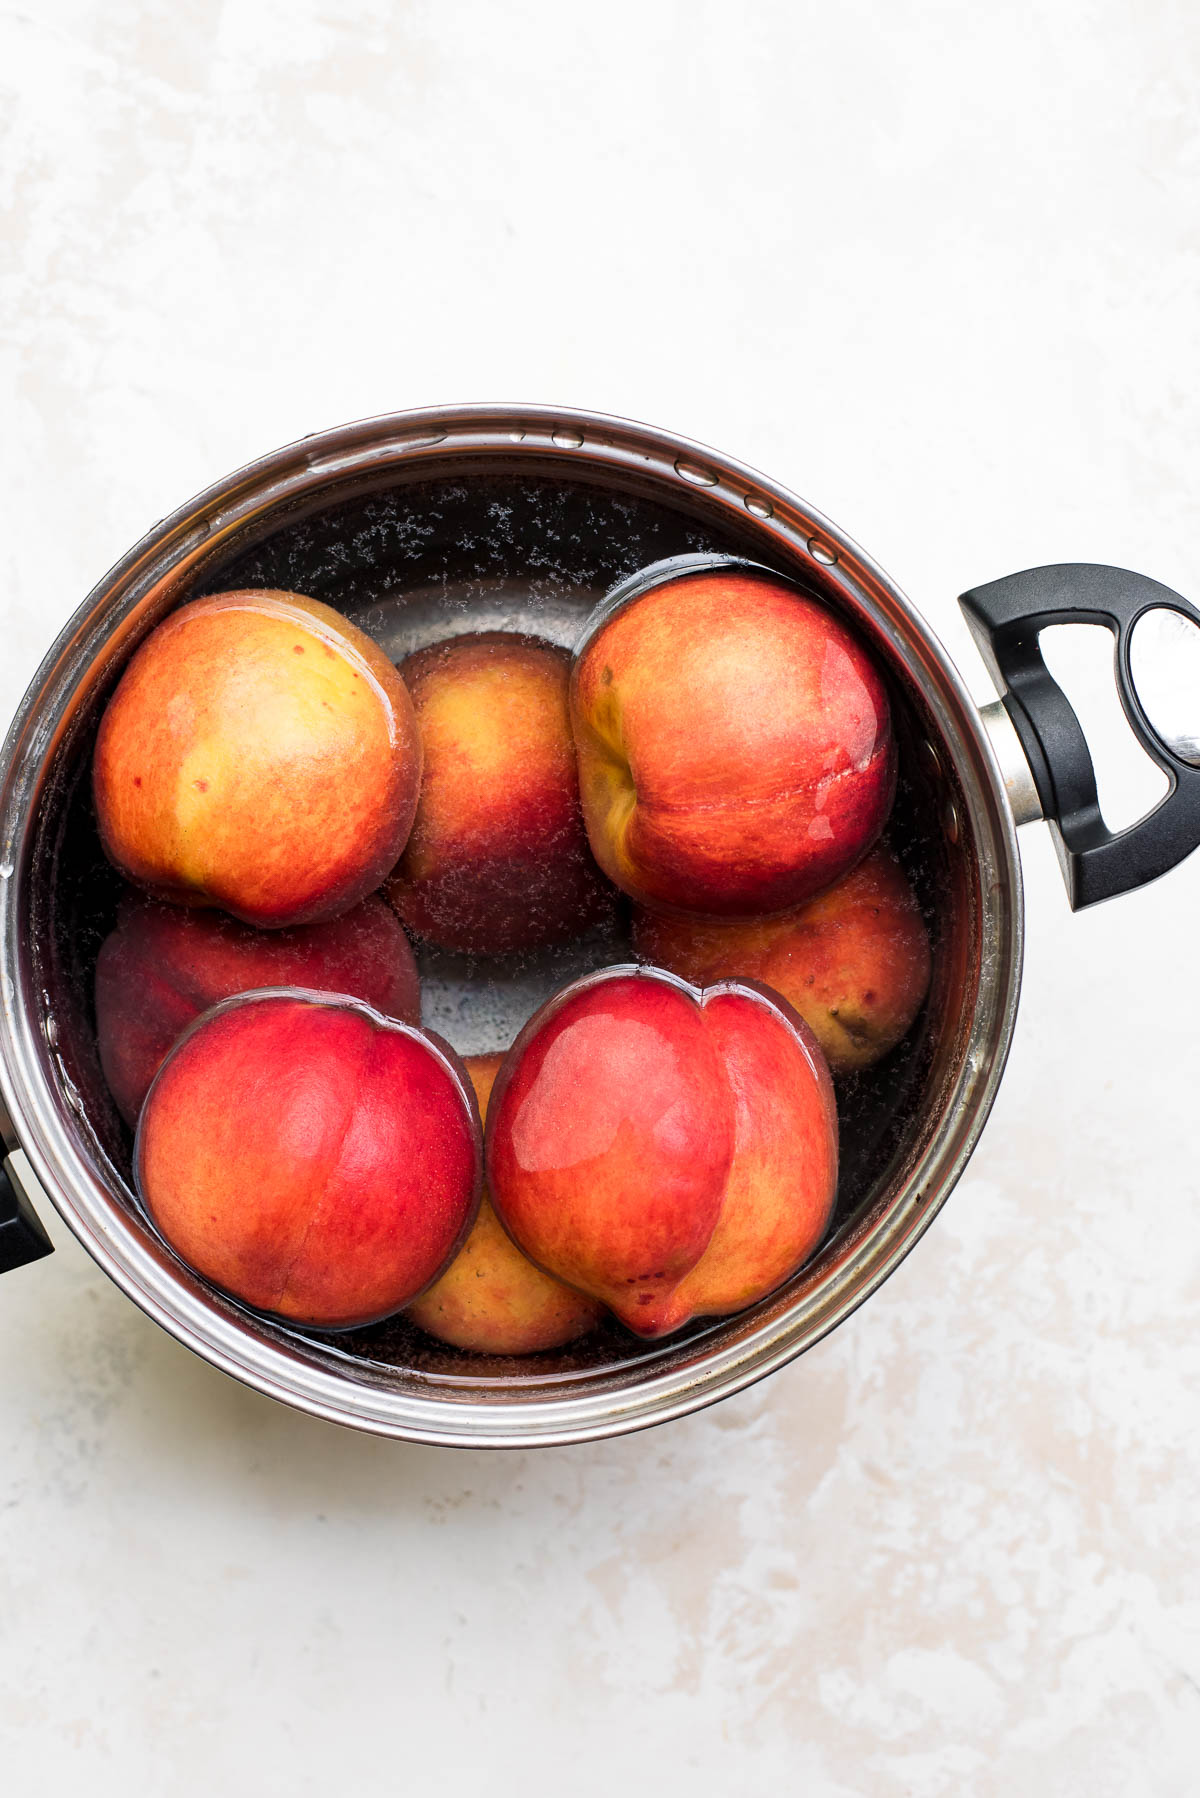 peach jam prep, blanching peaches in boiling water